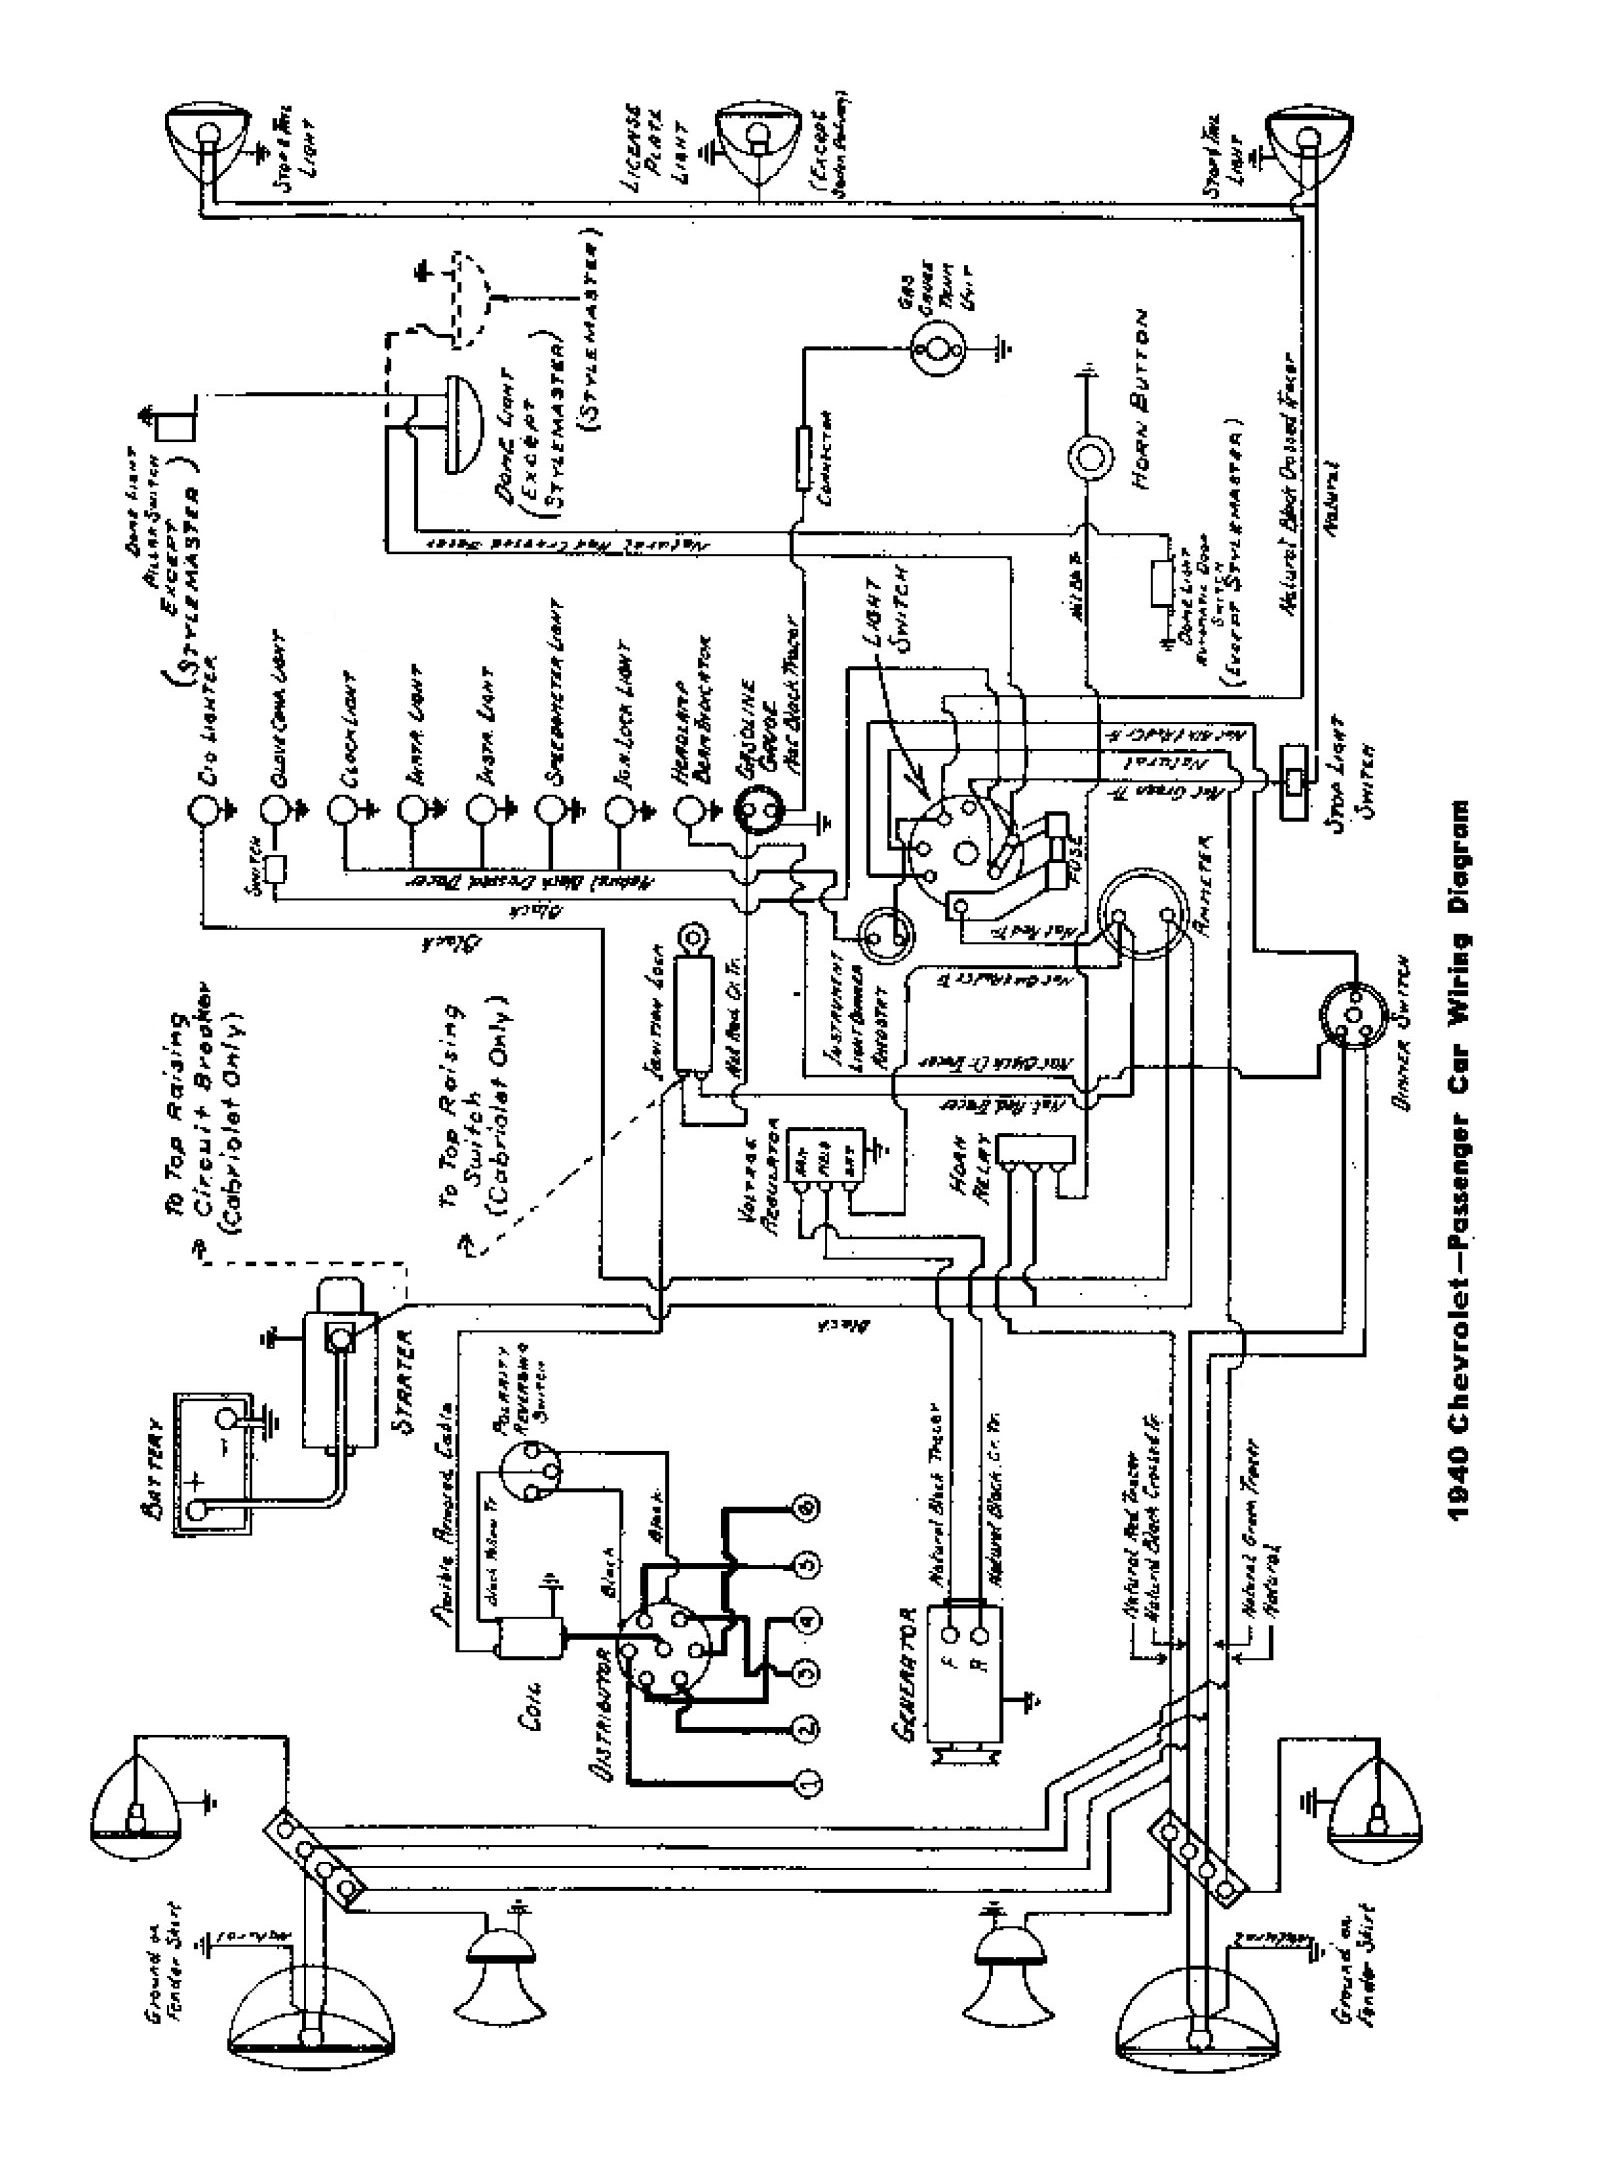 hight resolution of 72 88 royale wiring diagram